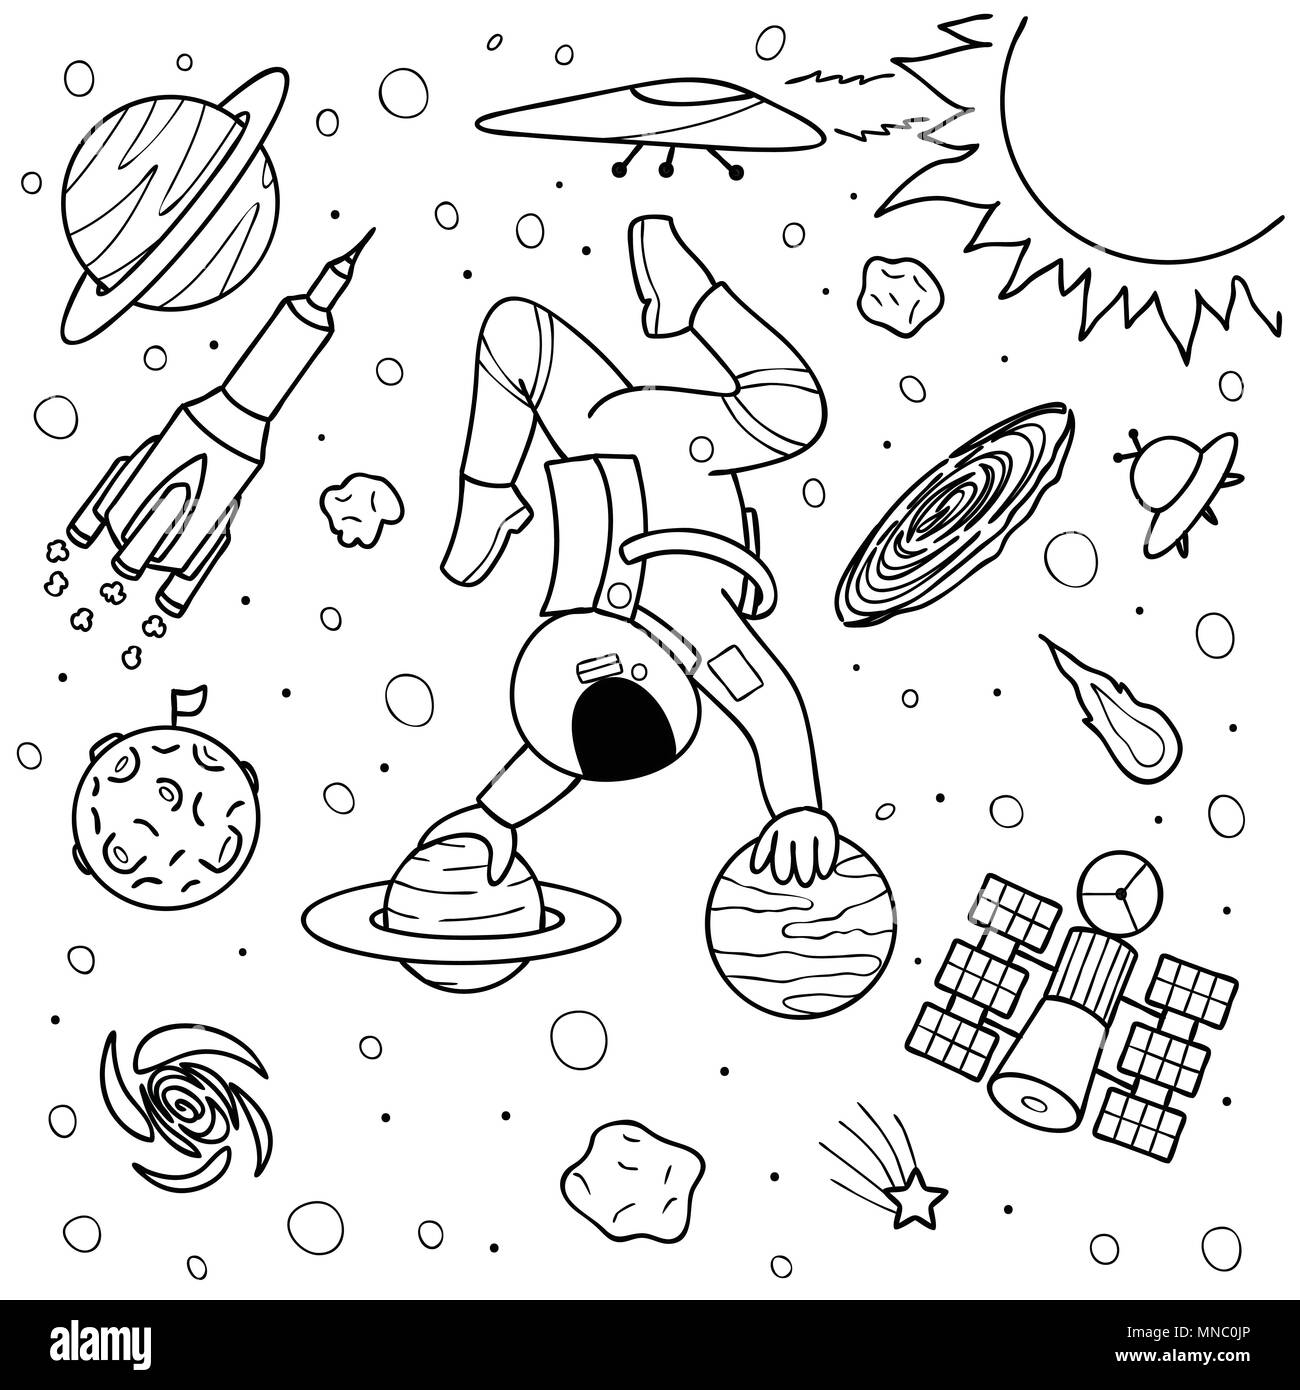 Funny Astronaut Doing Yoga On Planetsin Space Design For Printillustration And Coloring Book Page Kids Adult